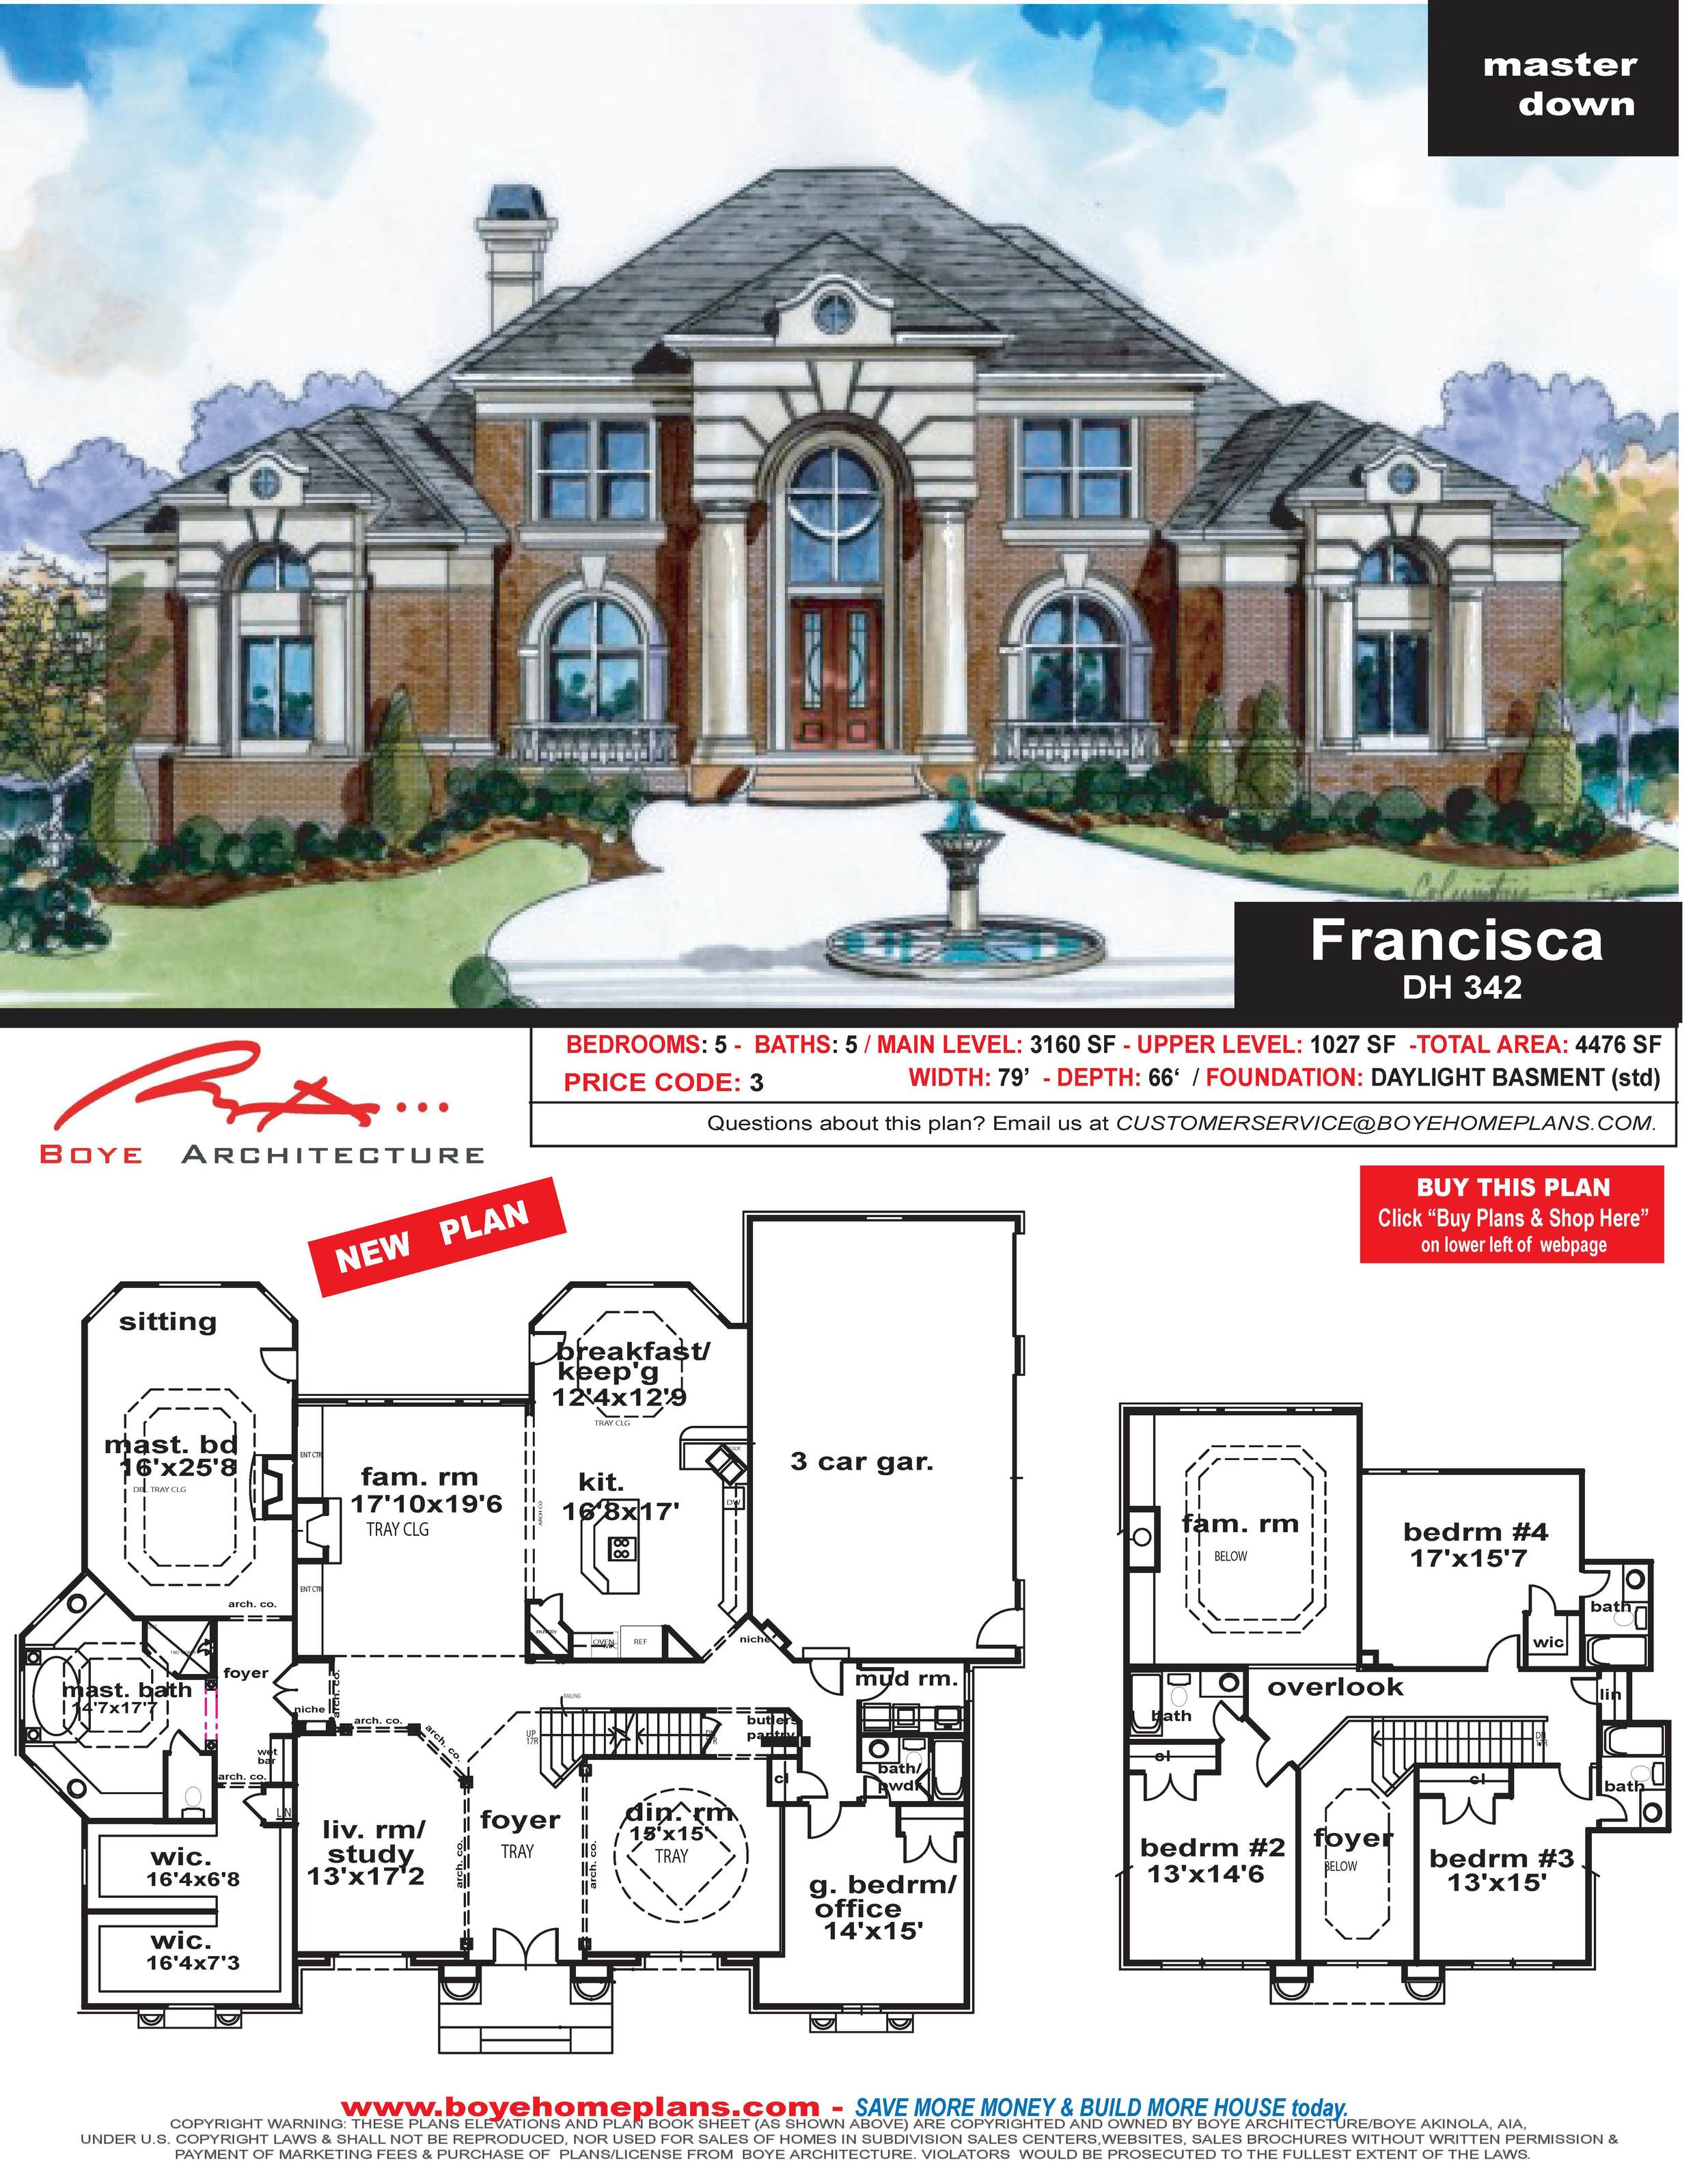 FRANCISCA PLAN PAGE-DH 342.jpg